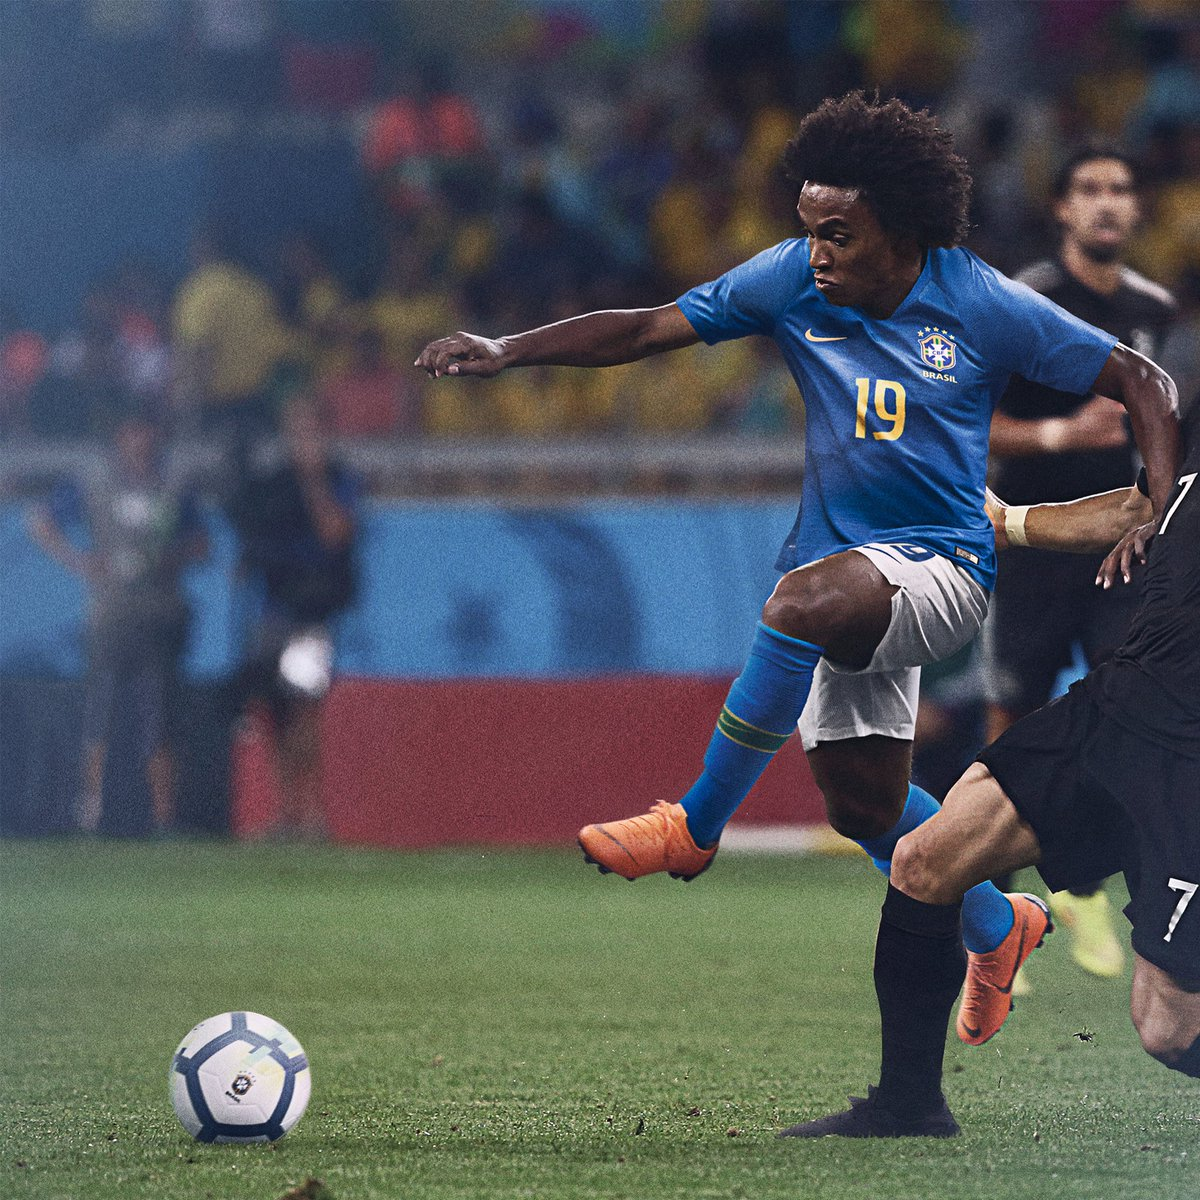 ... it appears that Nike have simply photoshopped and old photo of Chelsea  star Willian against Germany to promote the brand new World Cup Brazil Away  Kit.